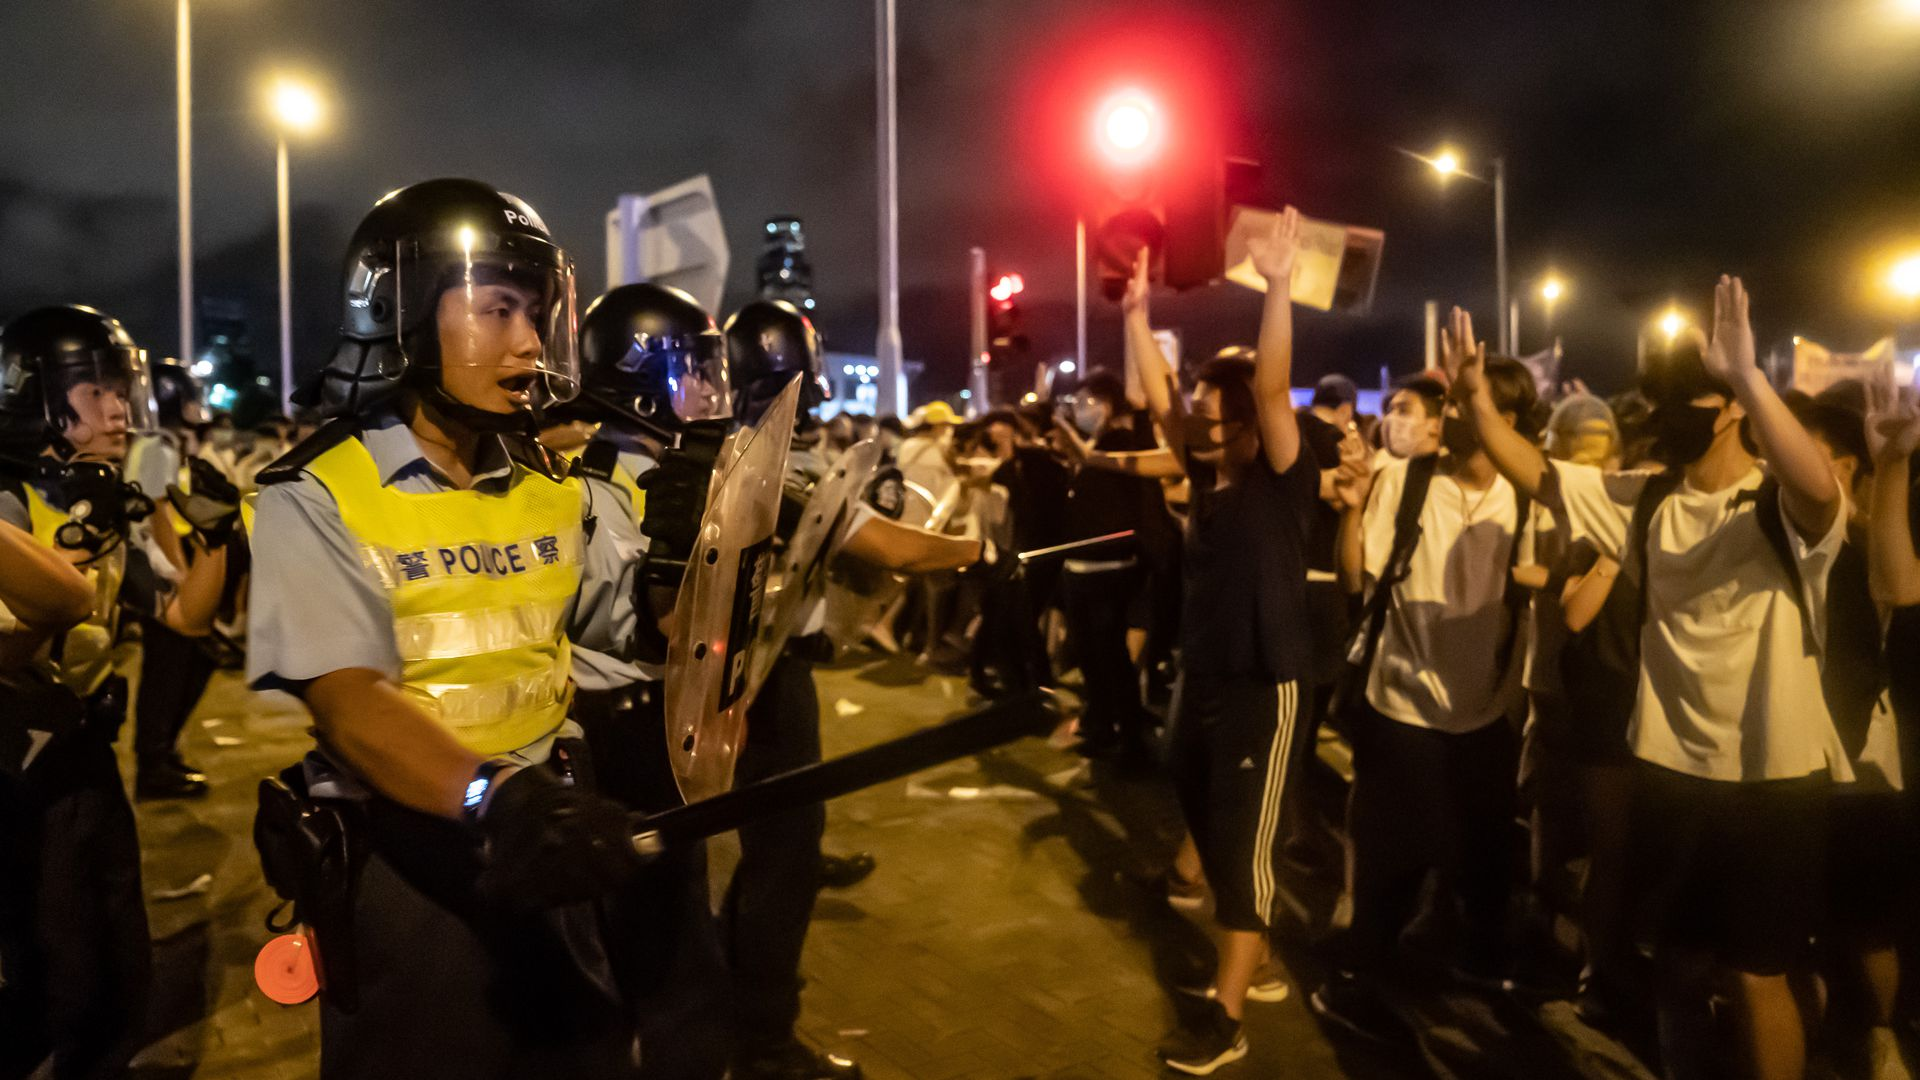 Protesters clash with police. Photo: Anthony Kwan/Getty Images